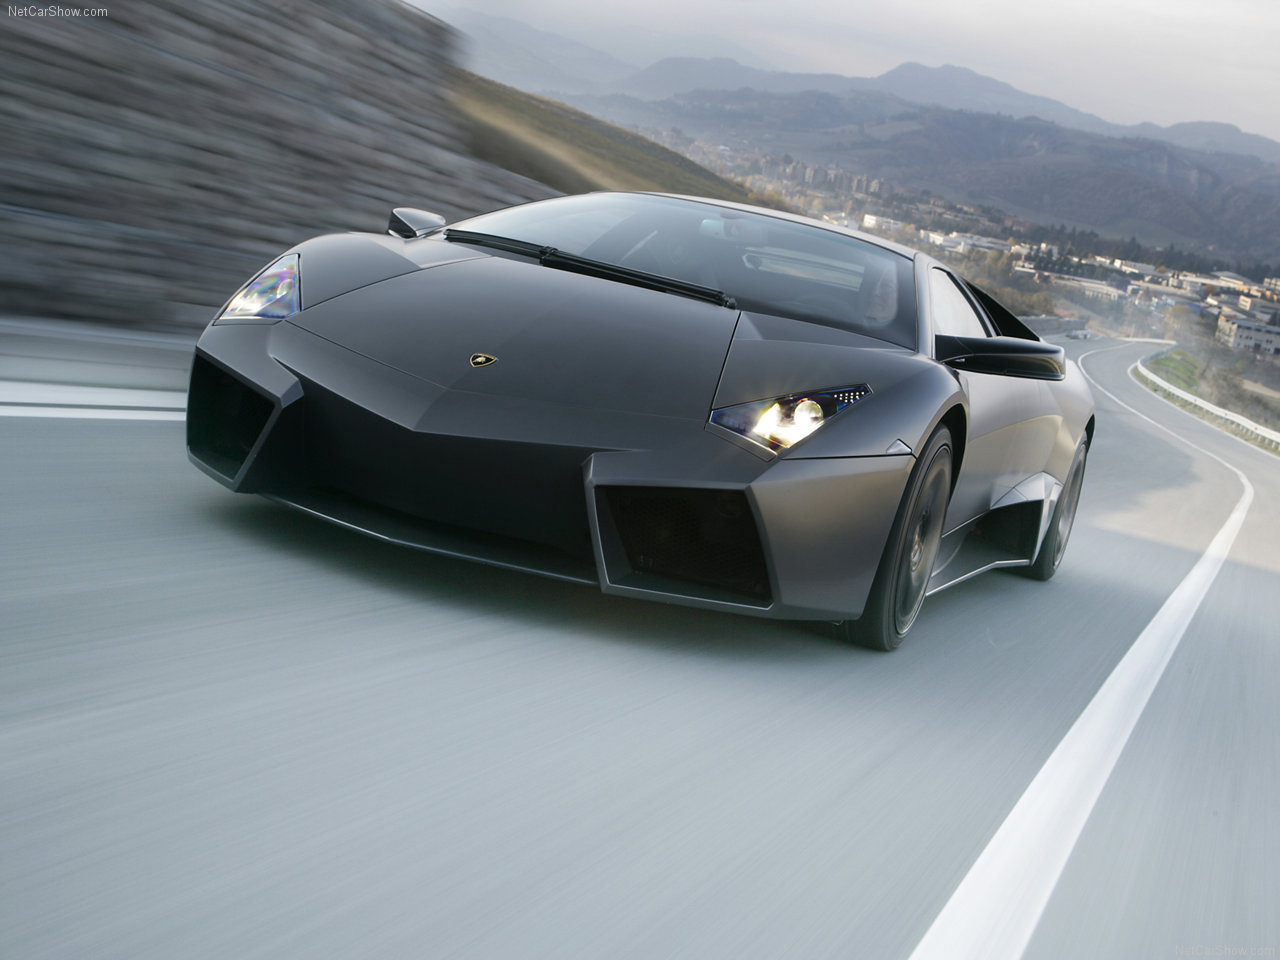 Hd Car Wallpapers Lamborghini Reventon Wallpaper